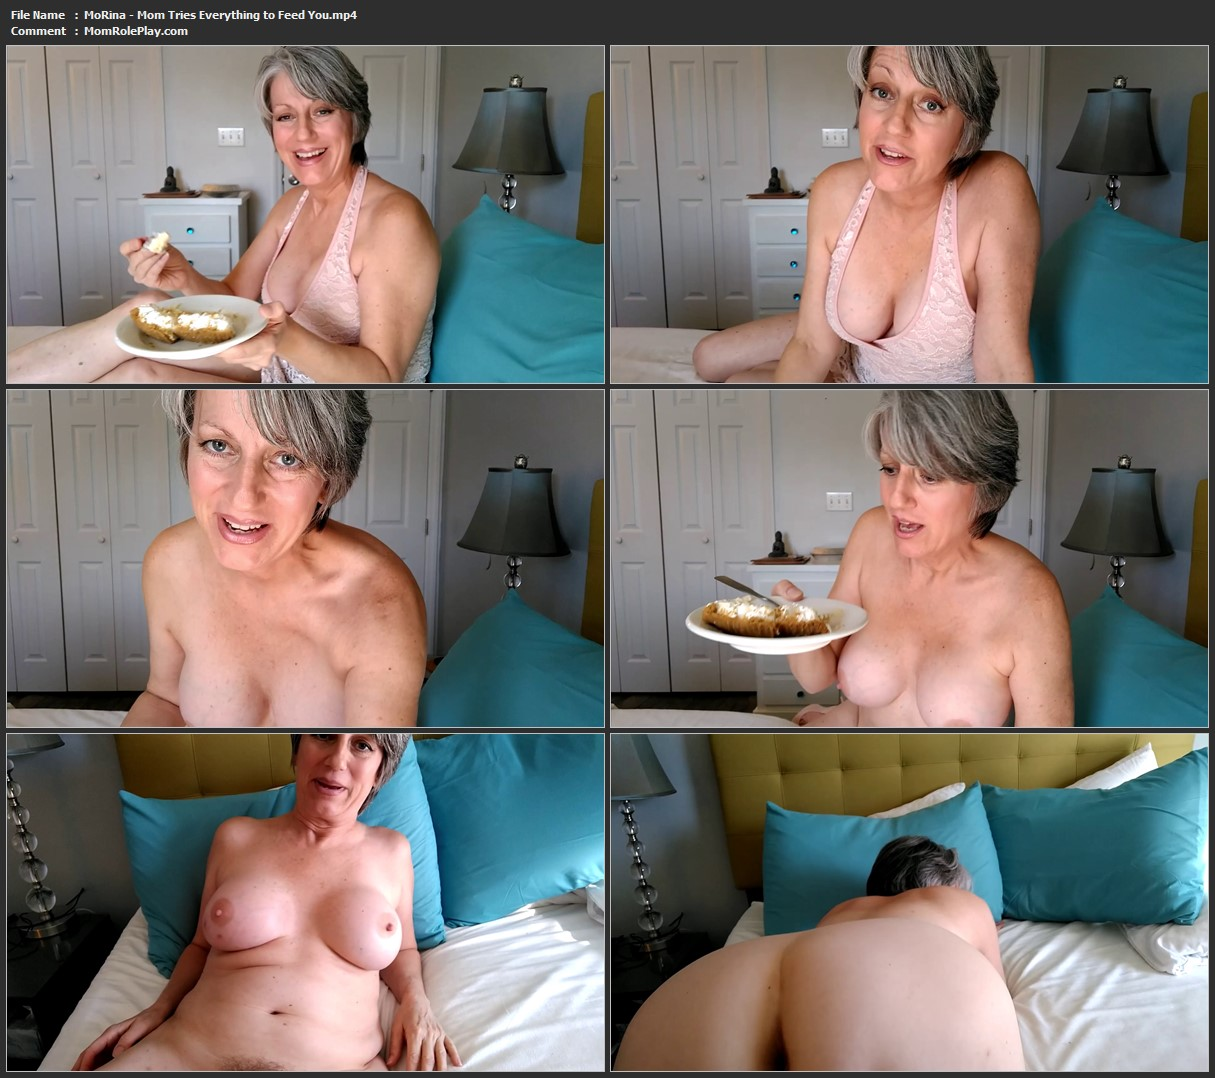 MoRina - Mom Tries Everything to Feed You